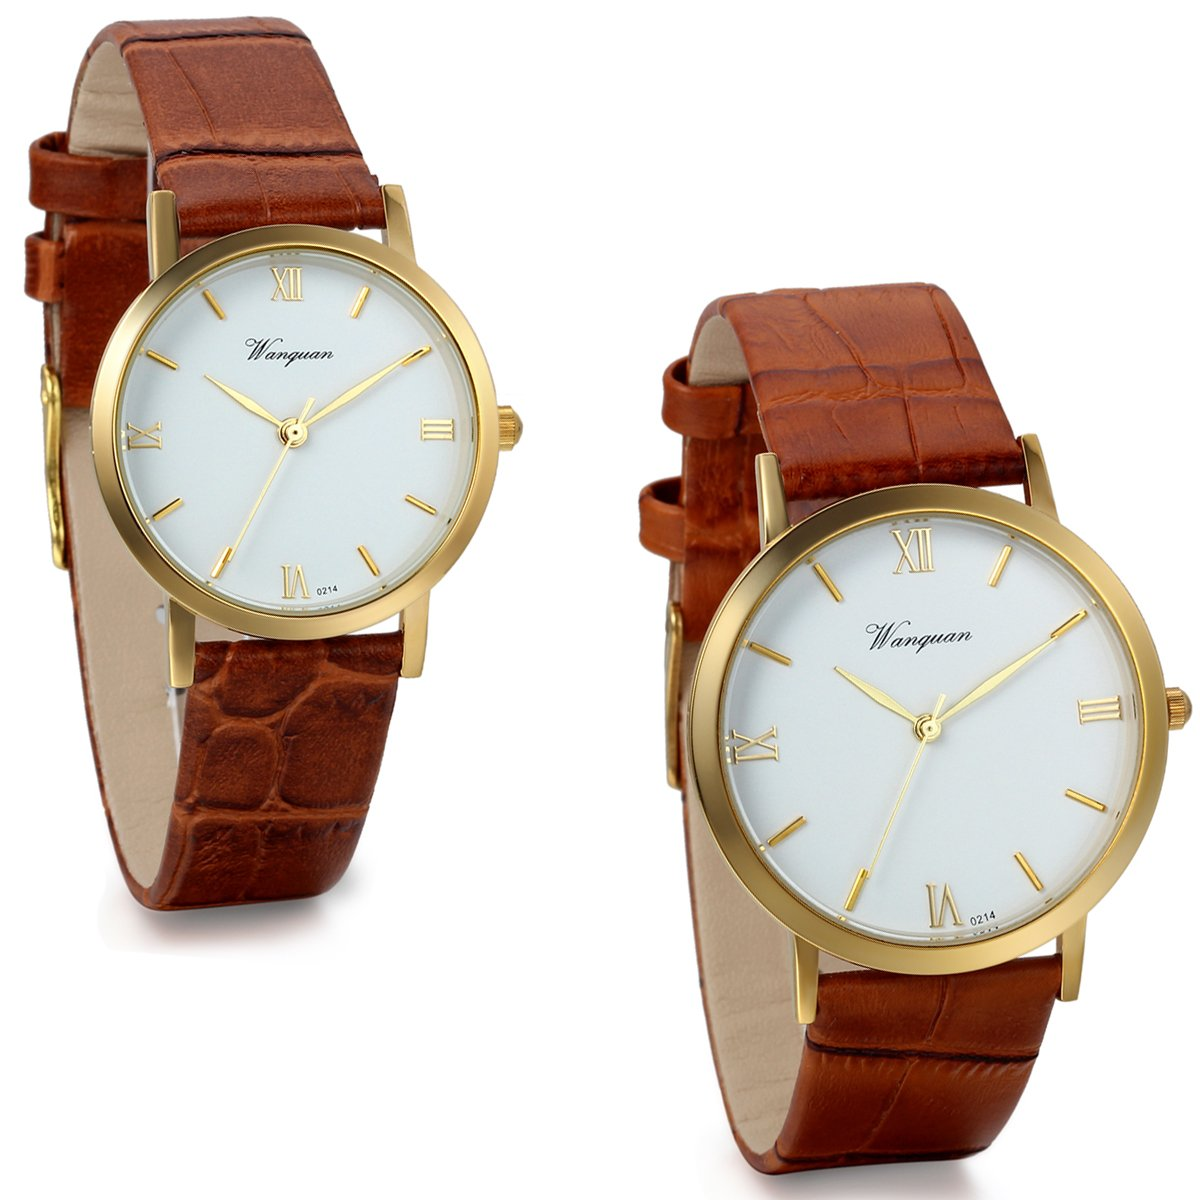 JewelryWe 2pcs of Couple His and Hers Wrist Watches Anniversary Valentine Gift Sets with Coffee Leather Band